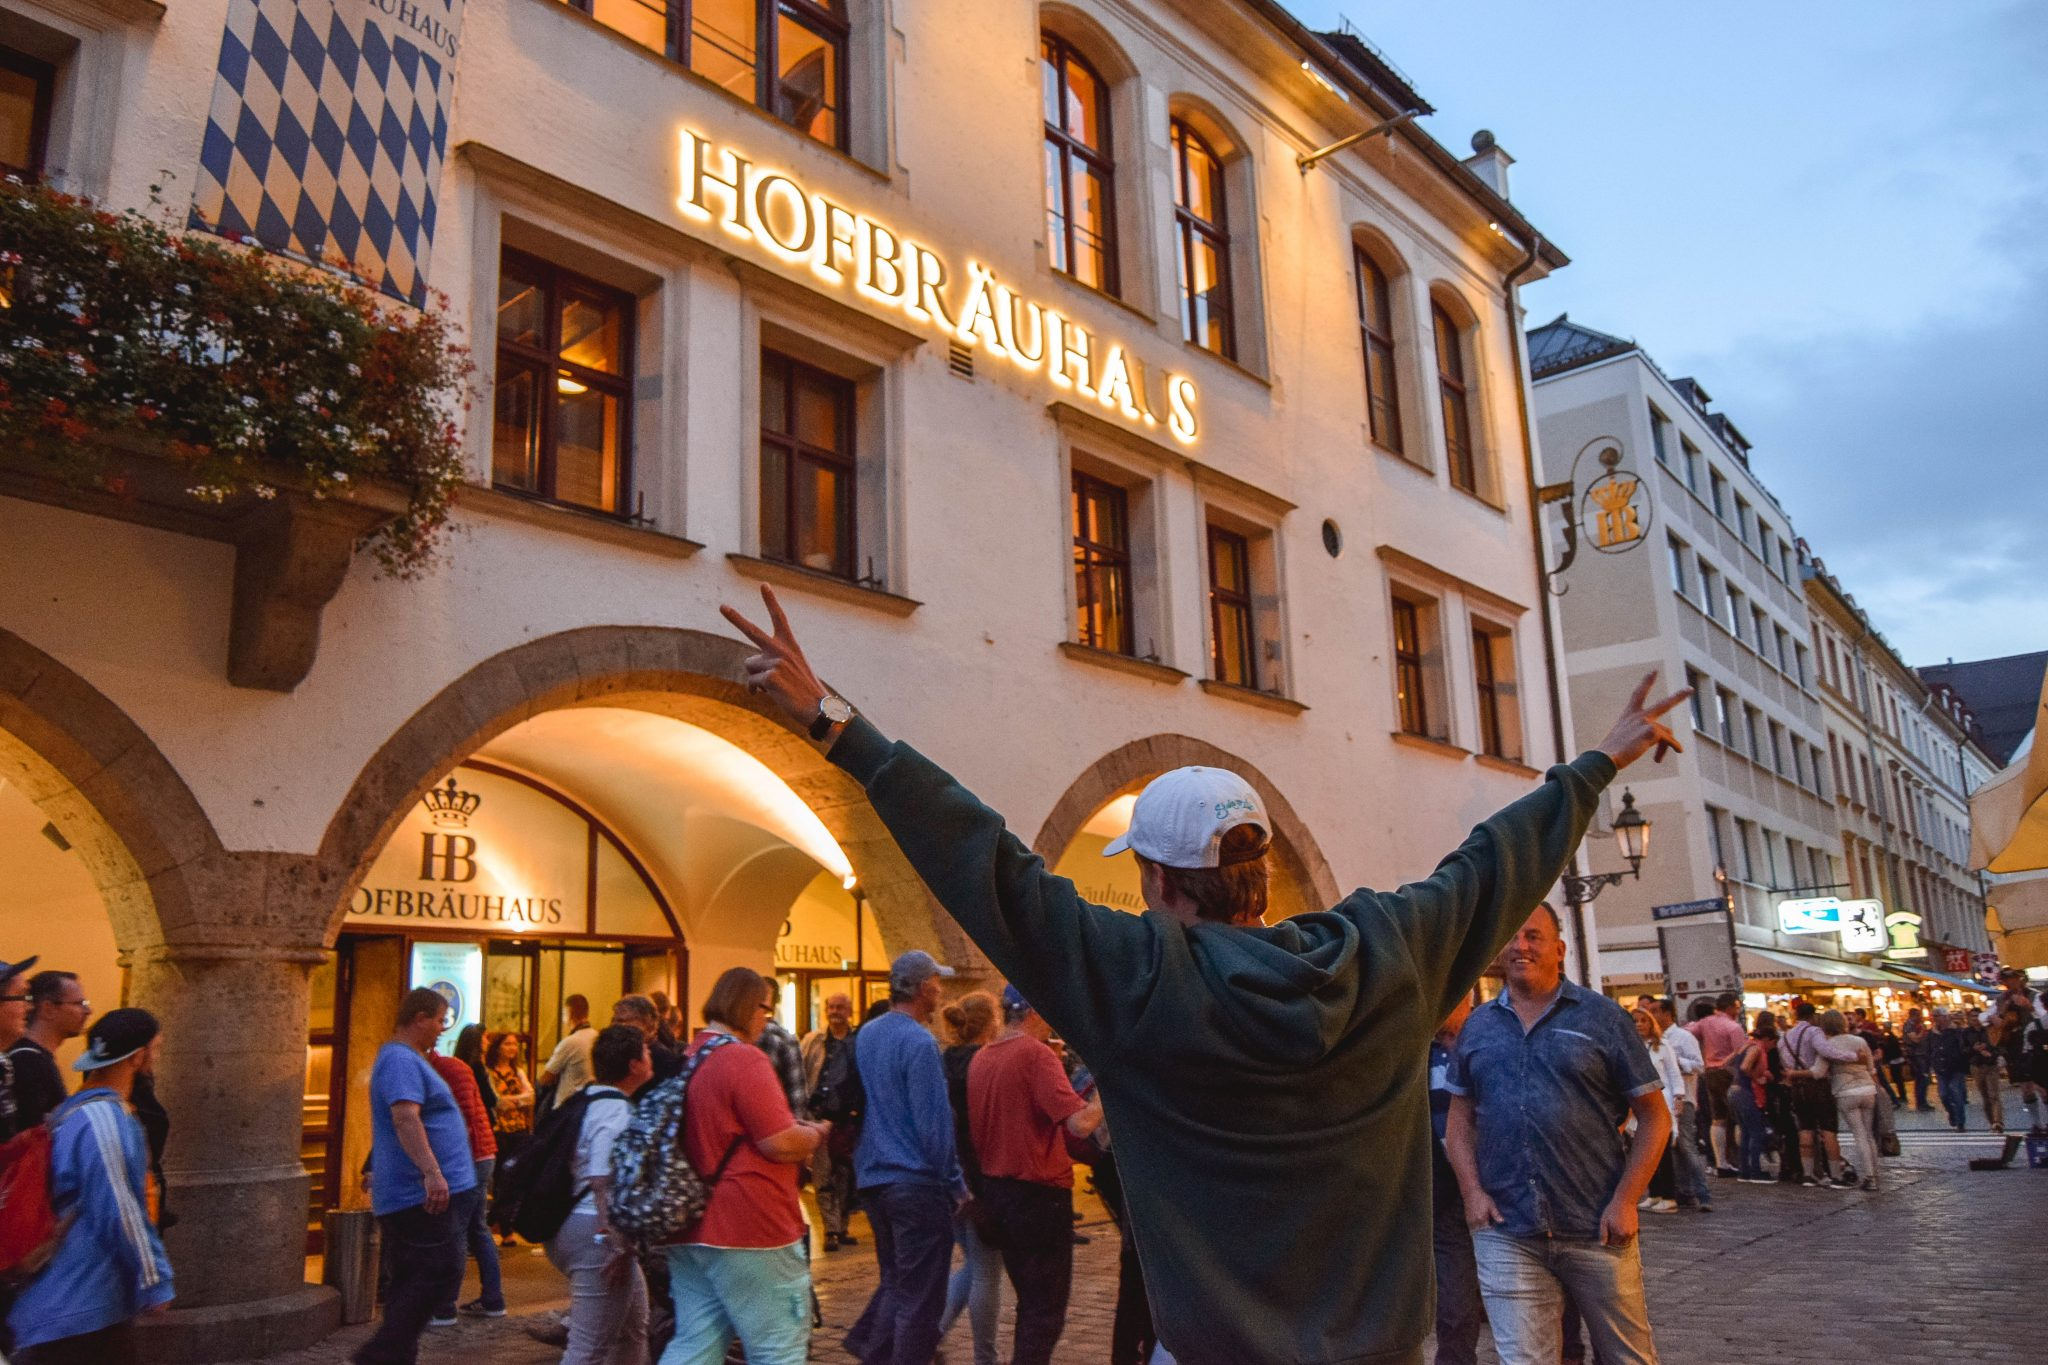 Wanderers & Warriors - Charlie & Lauren UK Travel Couple - Things To Do In Munich In One Day - Hofbrauhaus Beer Hall Munich